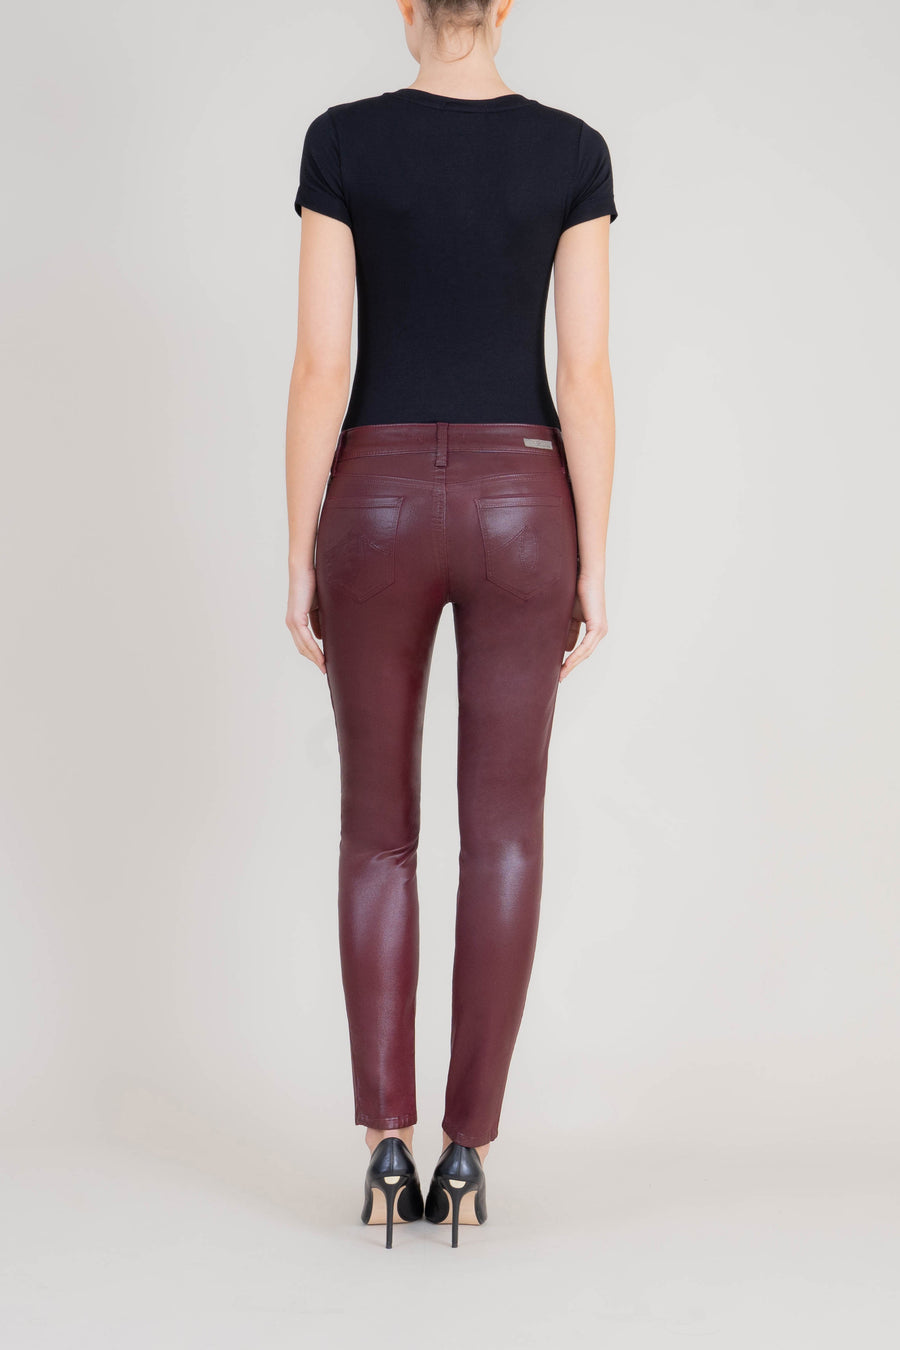 Liza Midrise Burgundy Lux Coated Skinny - level99jeans